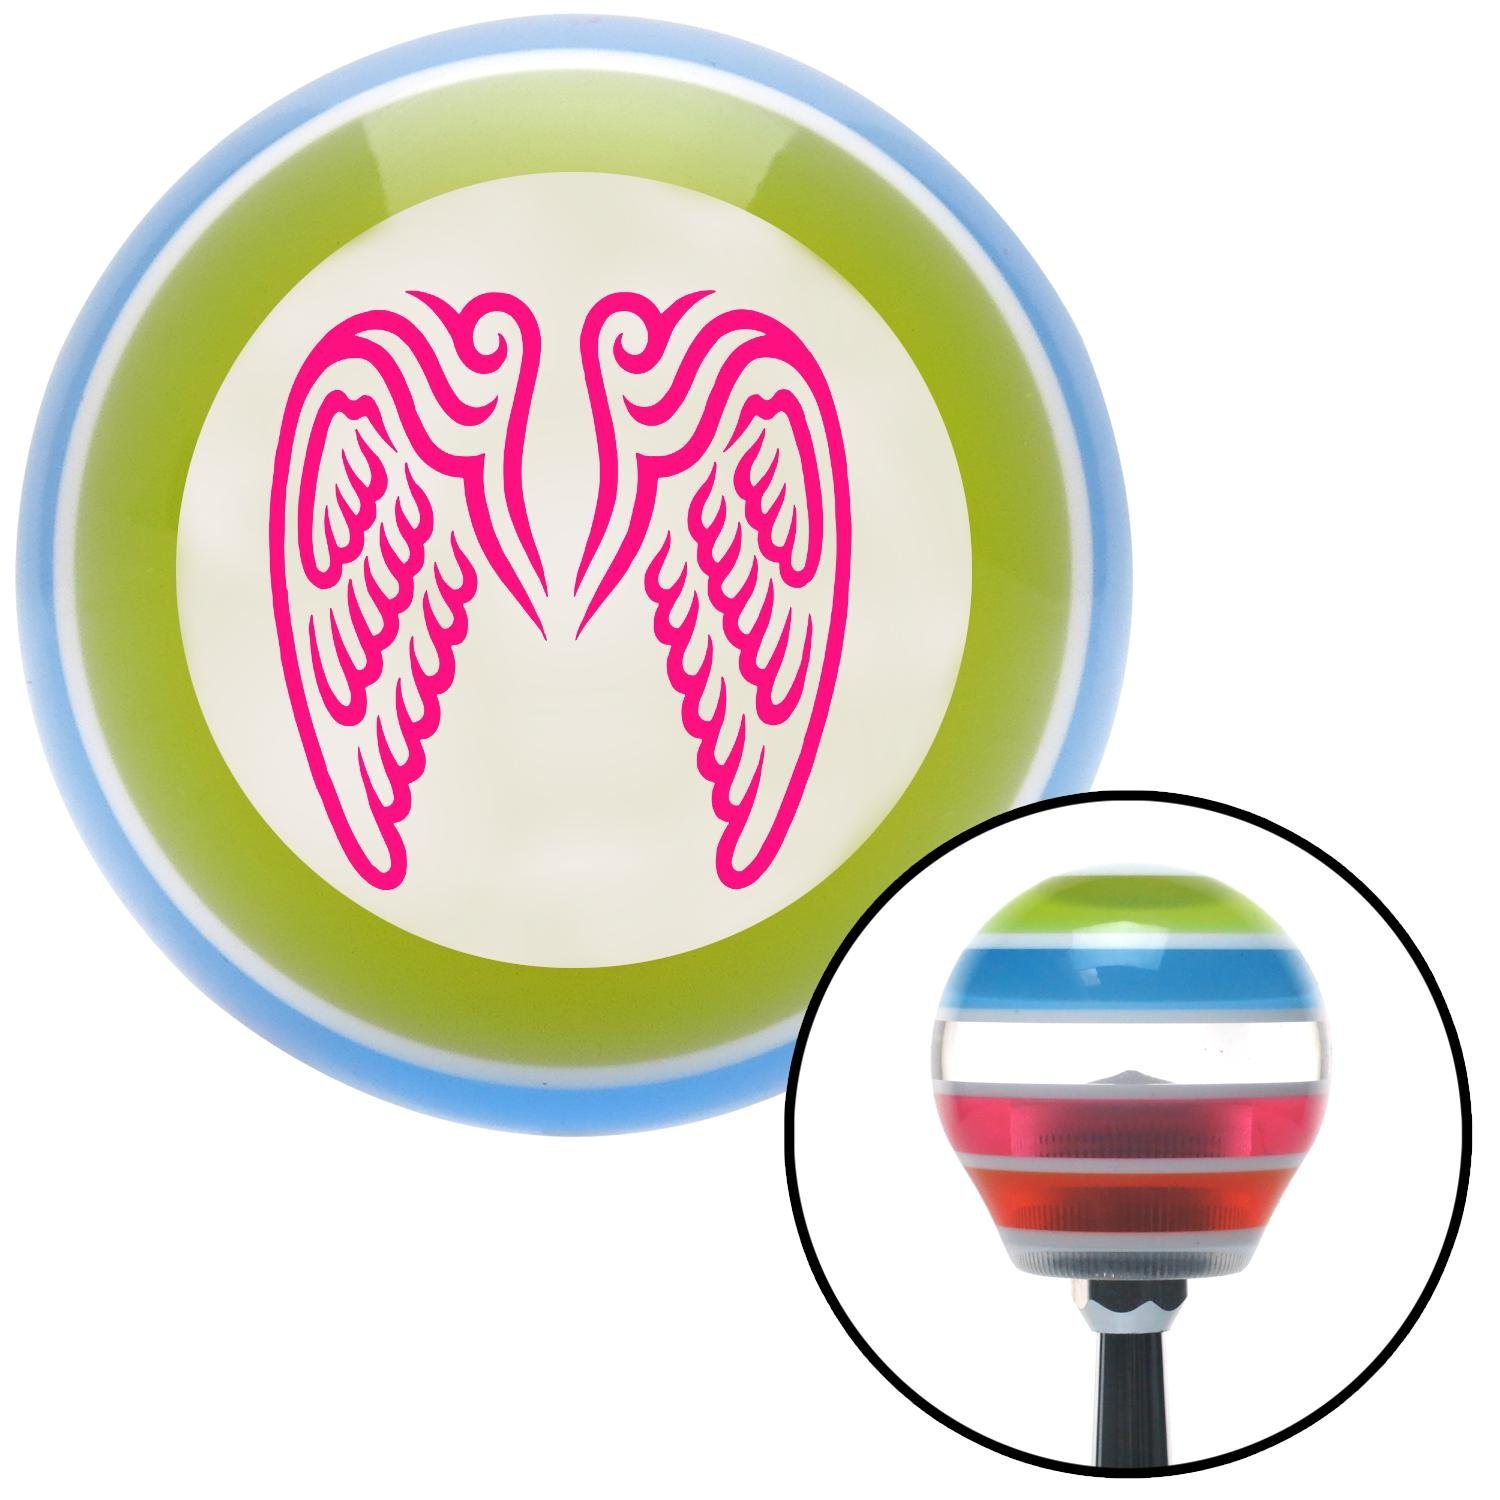 American Shifter 133152 Stripe Shift Knob with M16 x 1.5 Insert Pink Wings Conjoined in Lure